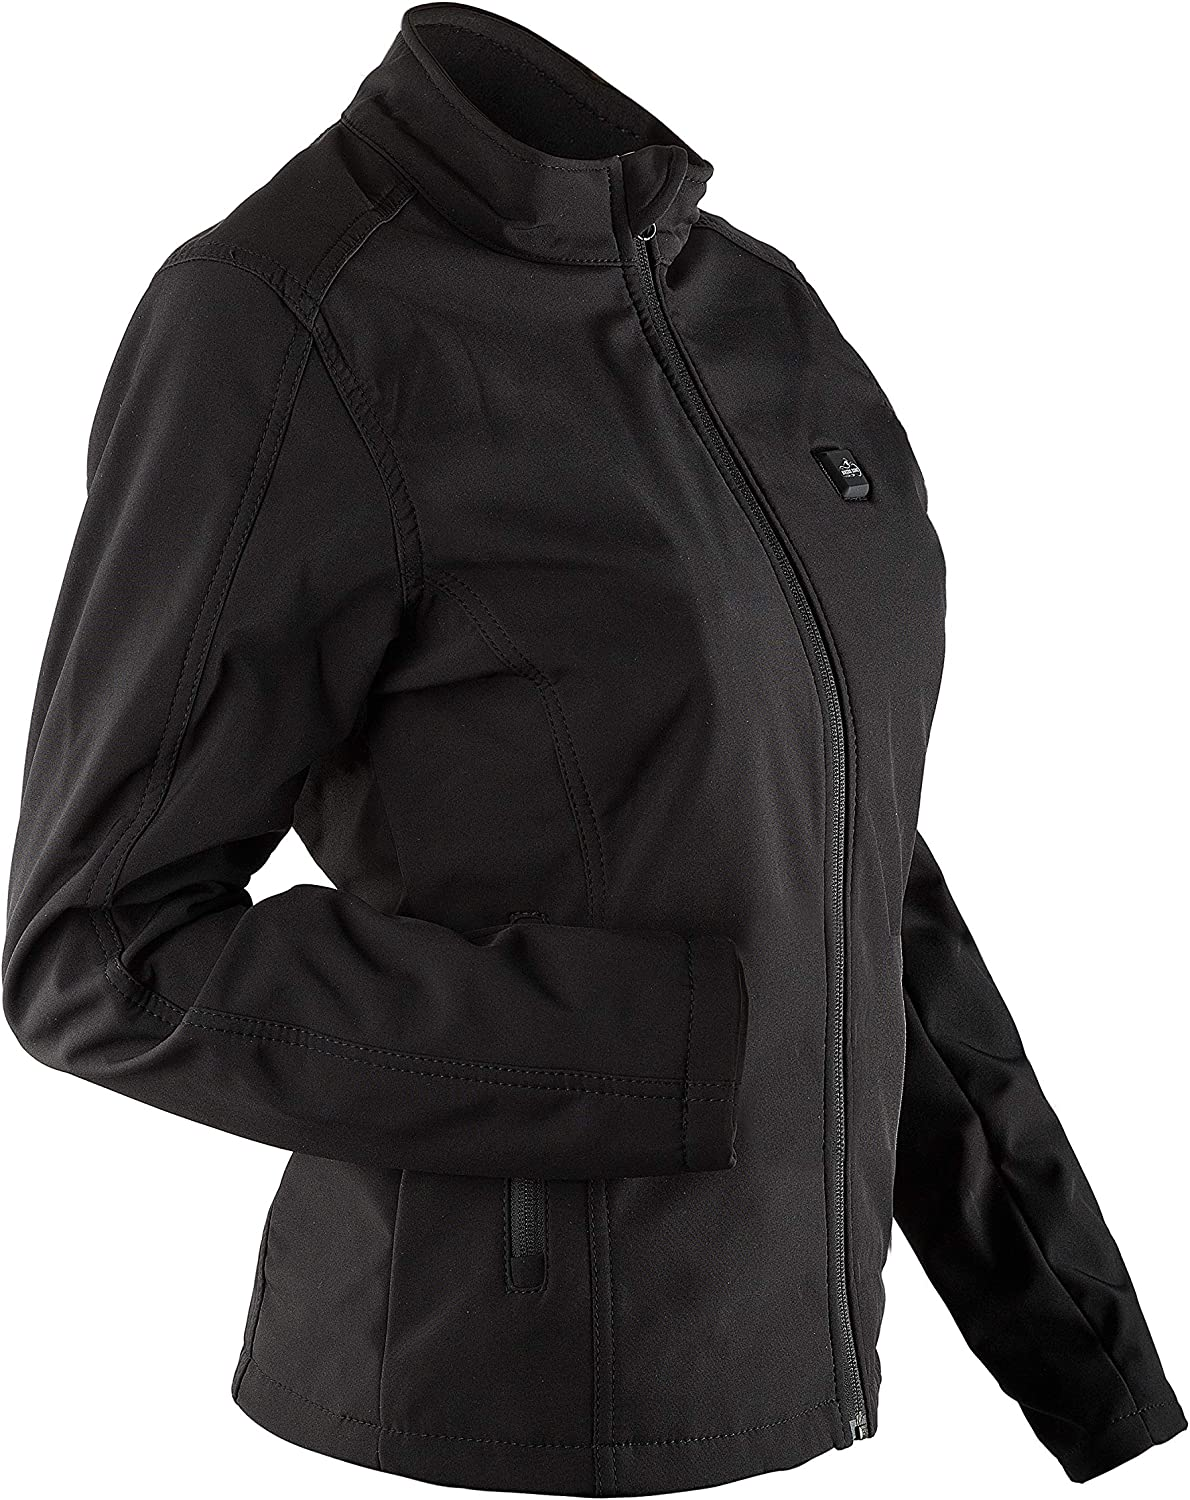 The Bikers Zone Womens Heated Soft Shell Jacket with 12V Battery   4 x Heating Zones & Padding